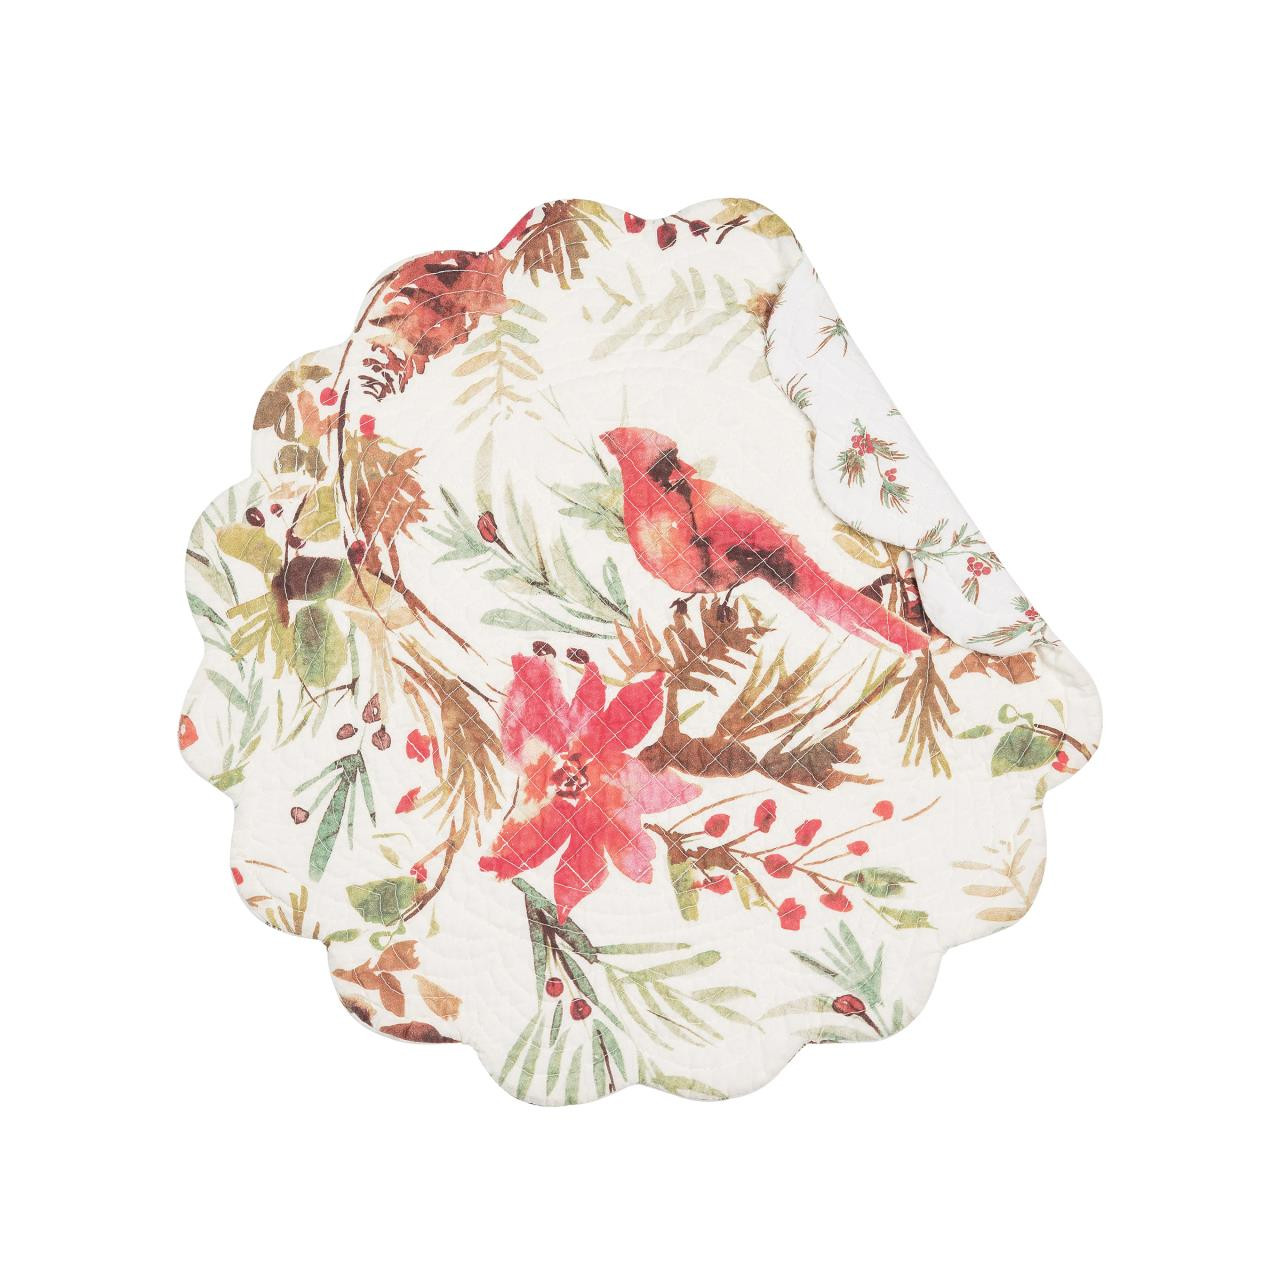 Averie Round Placemat Set - 8246775843